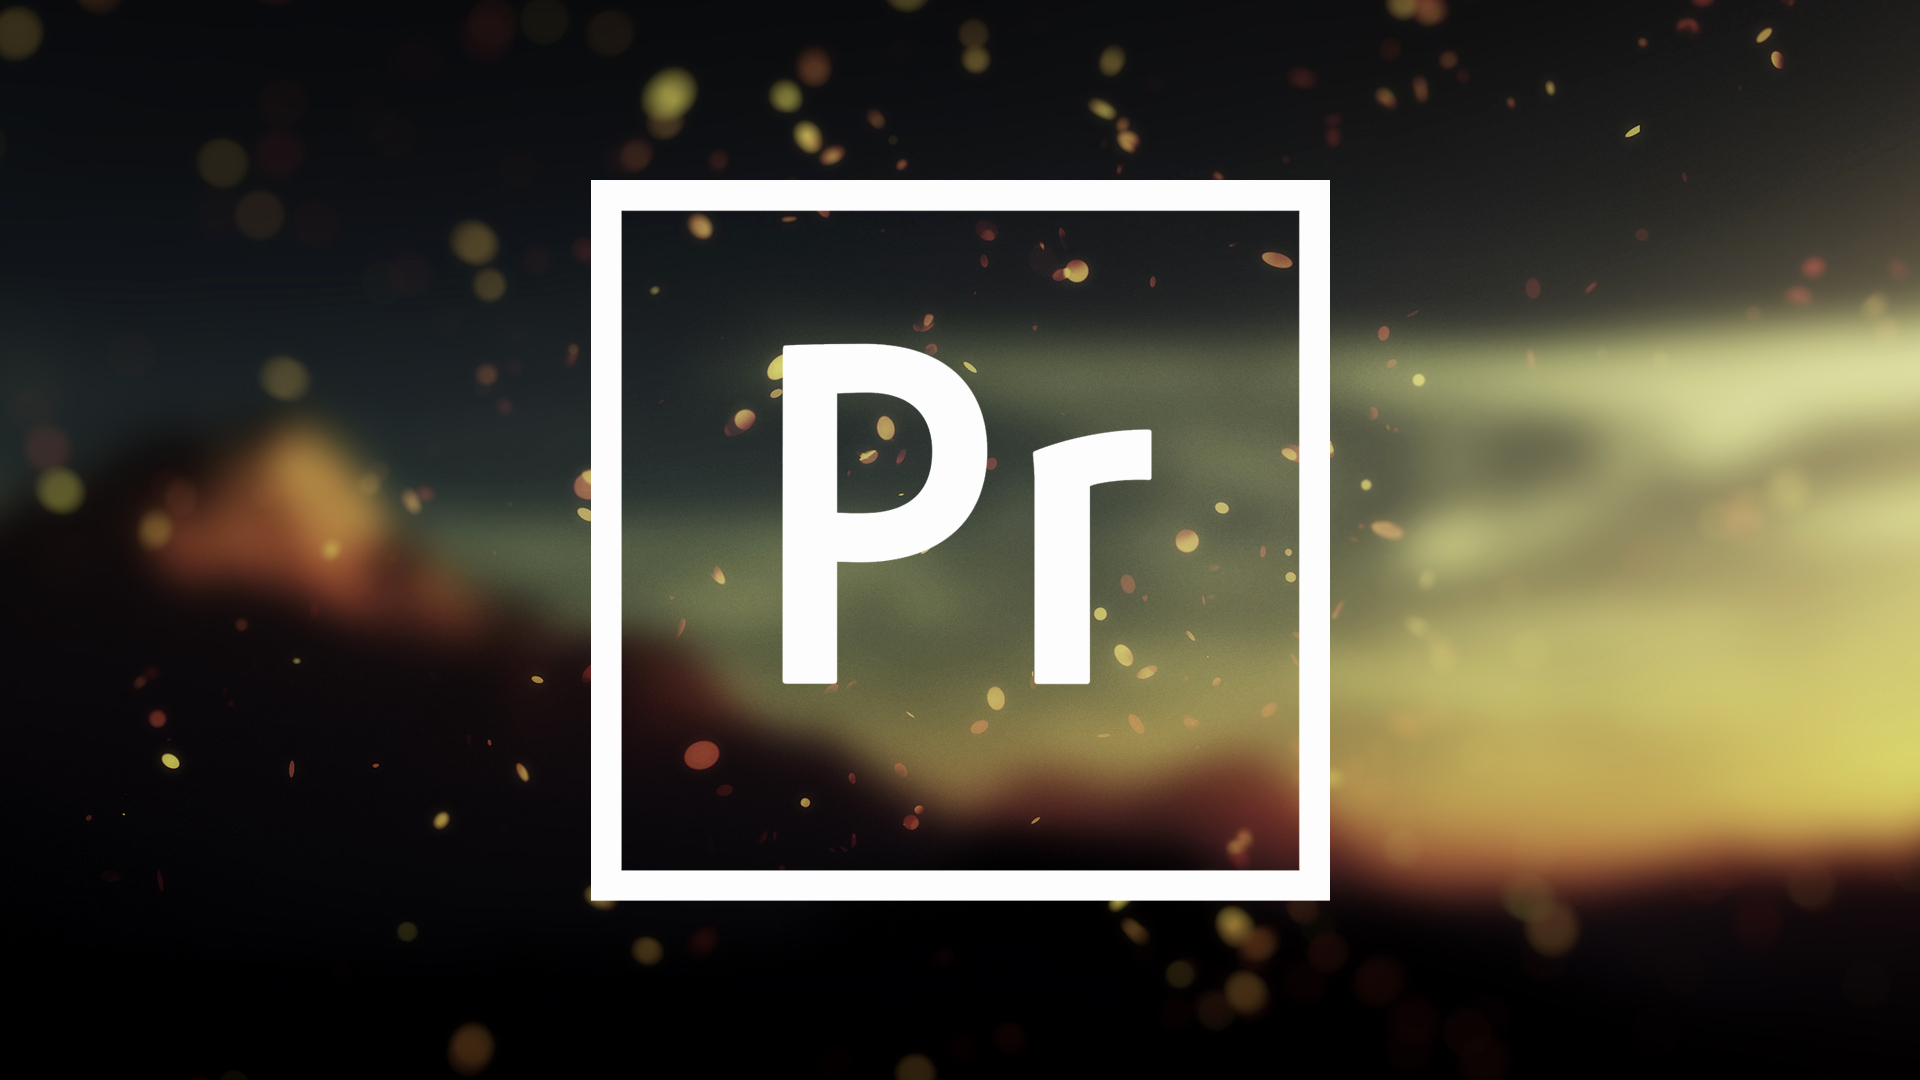 Slideshow Template Premiere Pro New Trending Slideshow Templates for Premiere Pro Envato